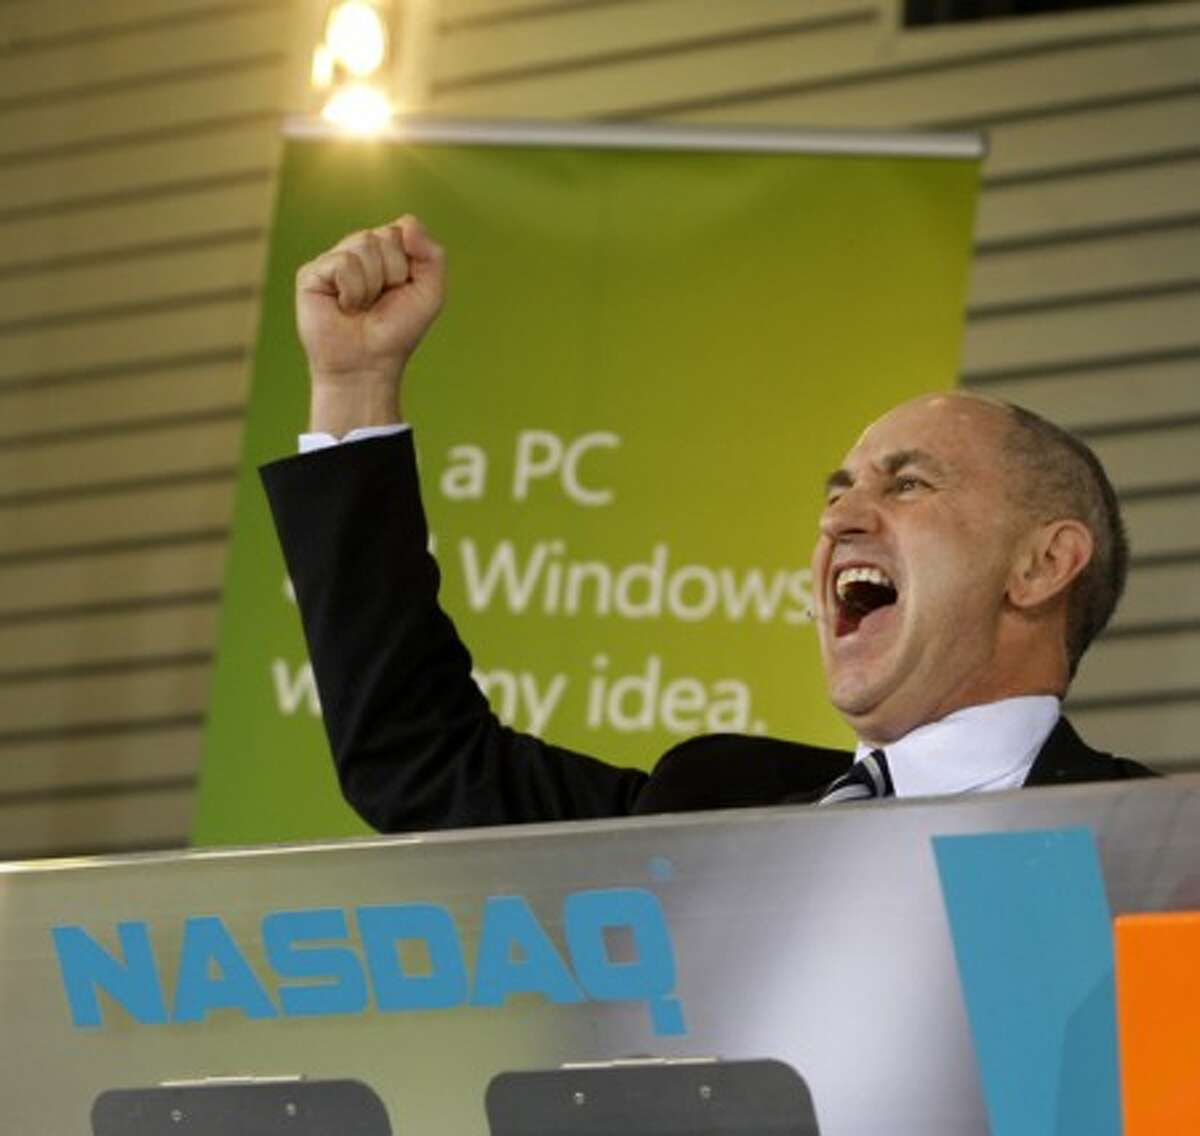 Chris Liddell, CFO of Microsoft Corp., yells as he tries to fire up a crowd of Microsoft employees prior to the start of a rally to celebrate the release of Windows 7 at the Microsoft Campus Thursday, Oct. 22, 2009, in Redmond, Wash. During the gathering Liddell pushed a button to officially start the NASDAQ stock market trading day. (AP Photo/Ted S. Warren)